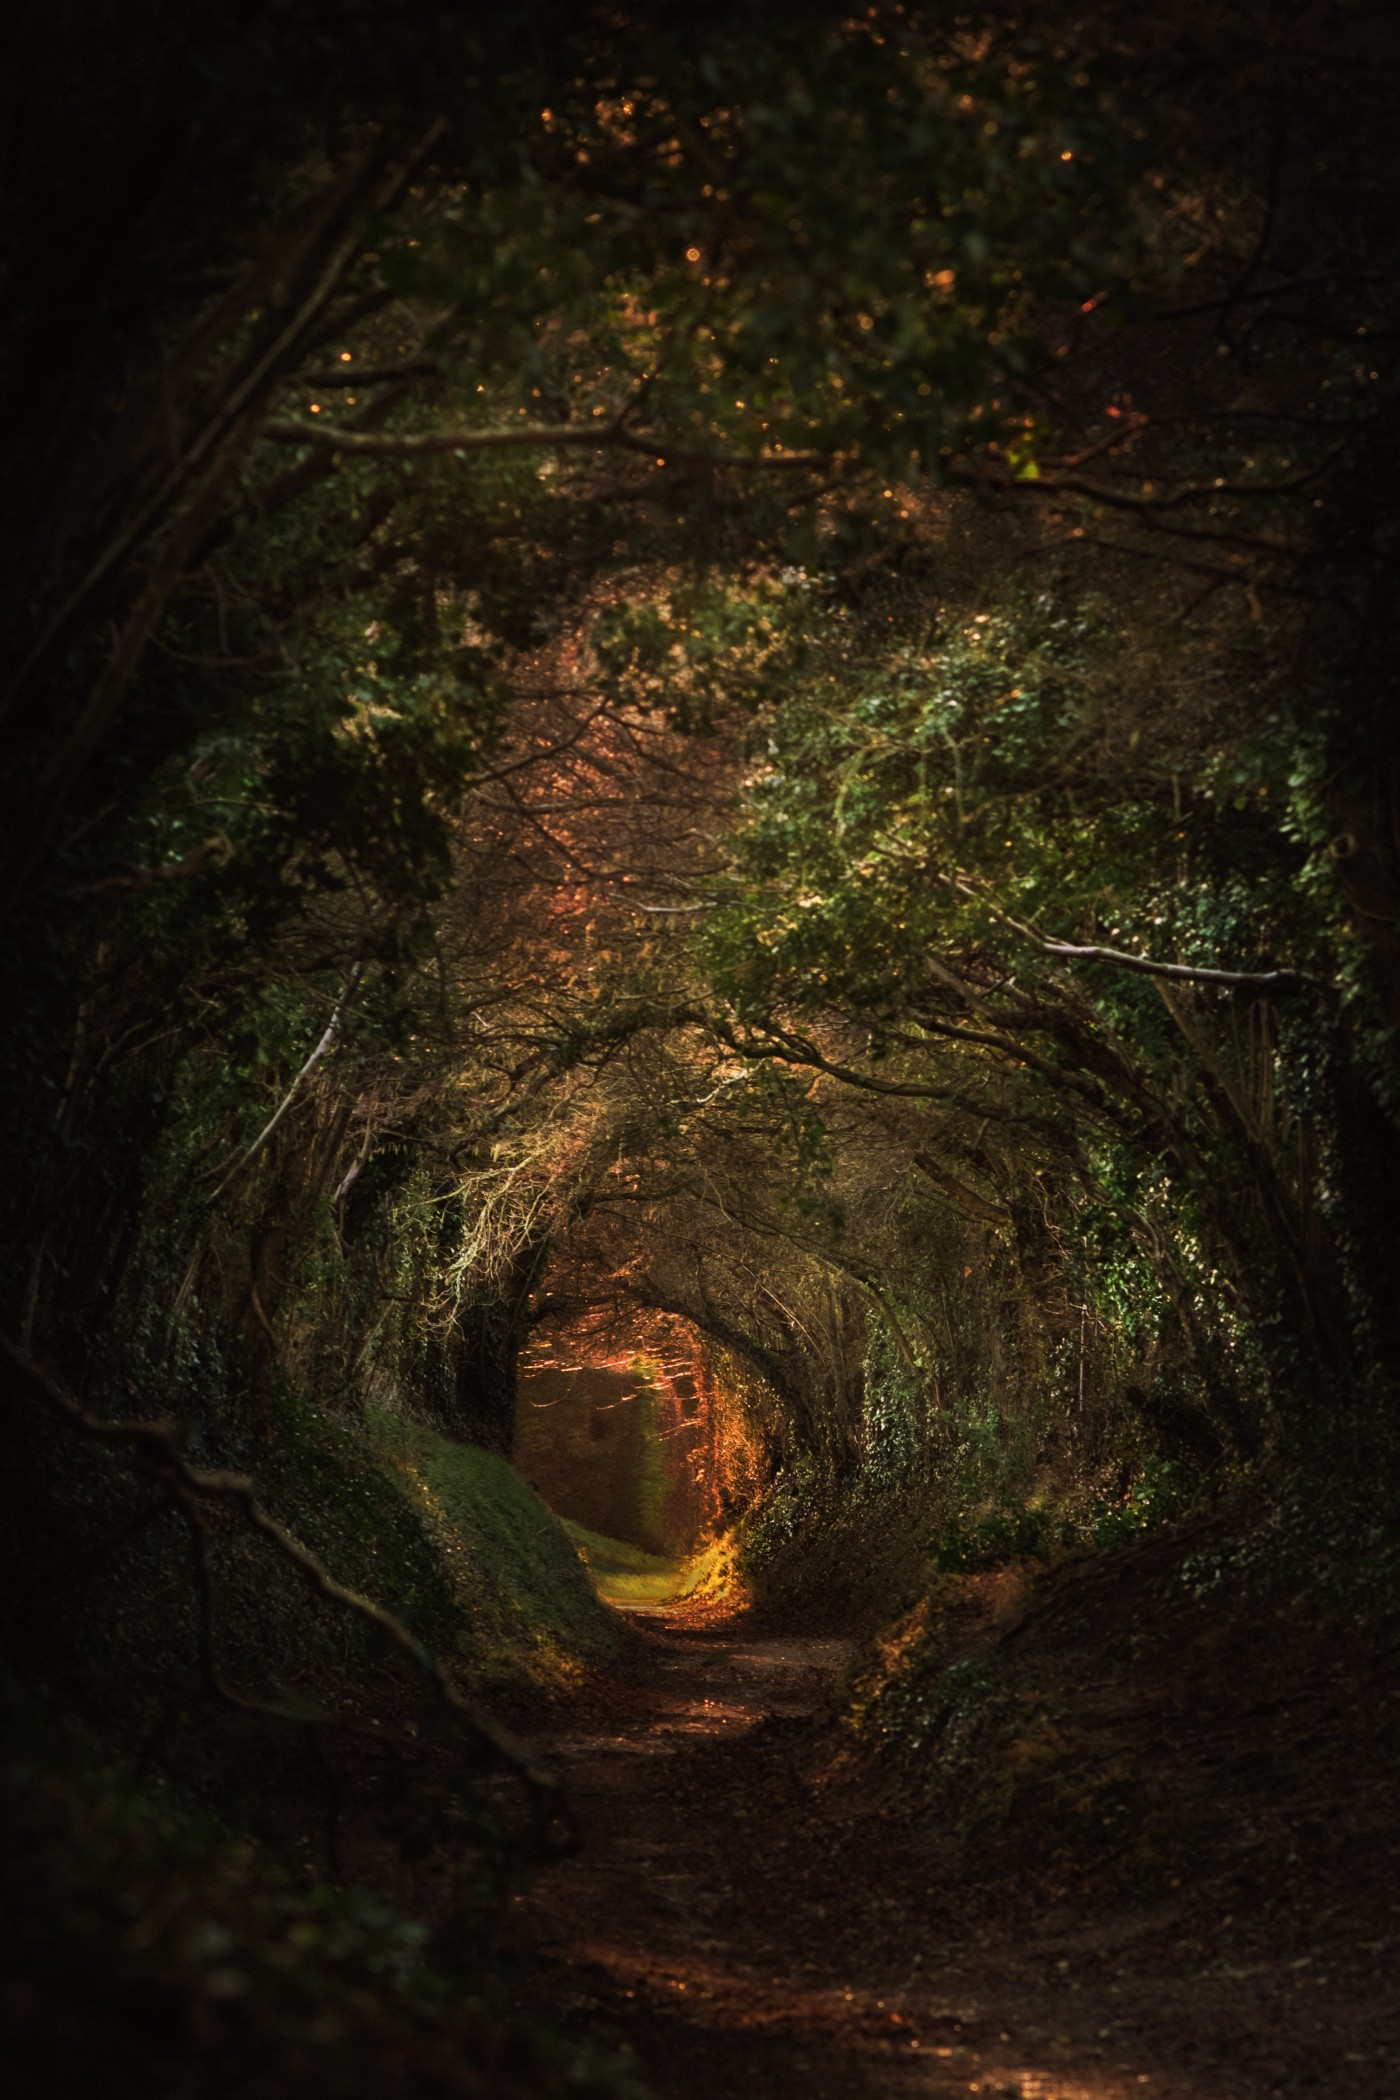 A magical looking hidden tunnel shrouded by trees and foliage